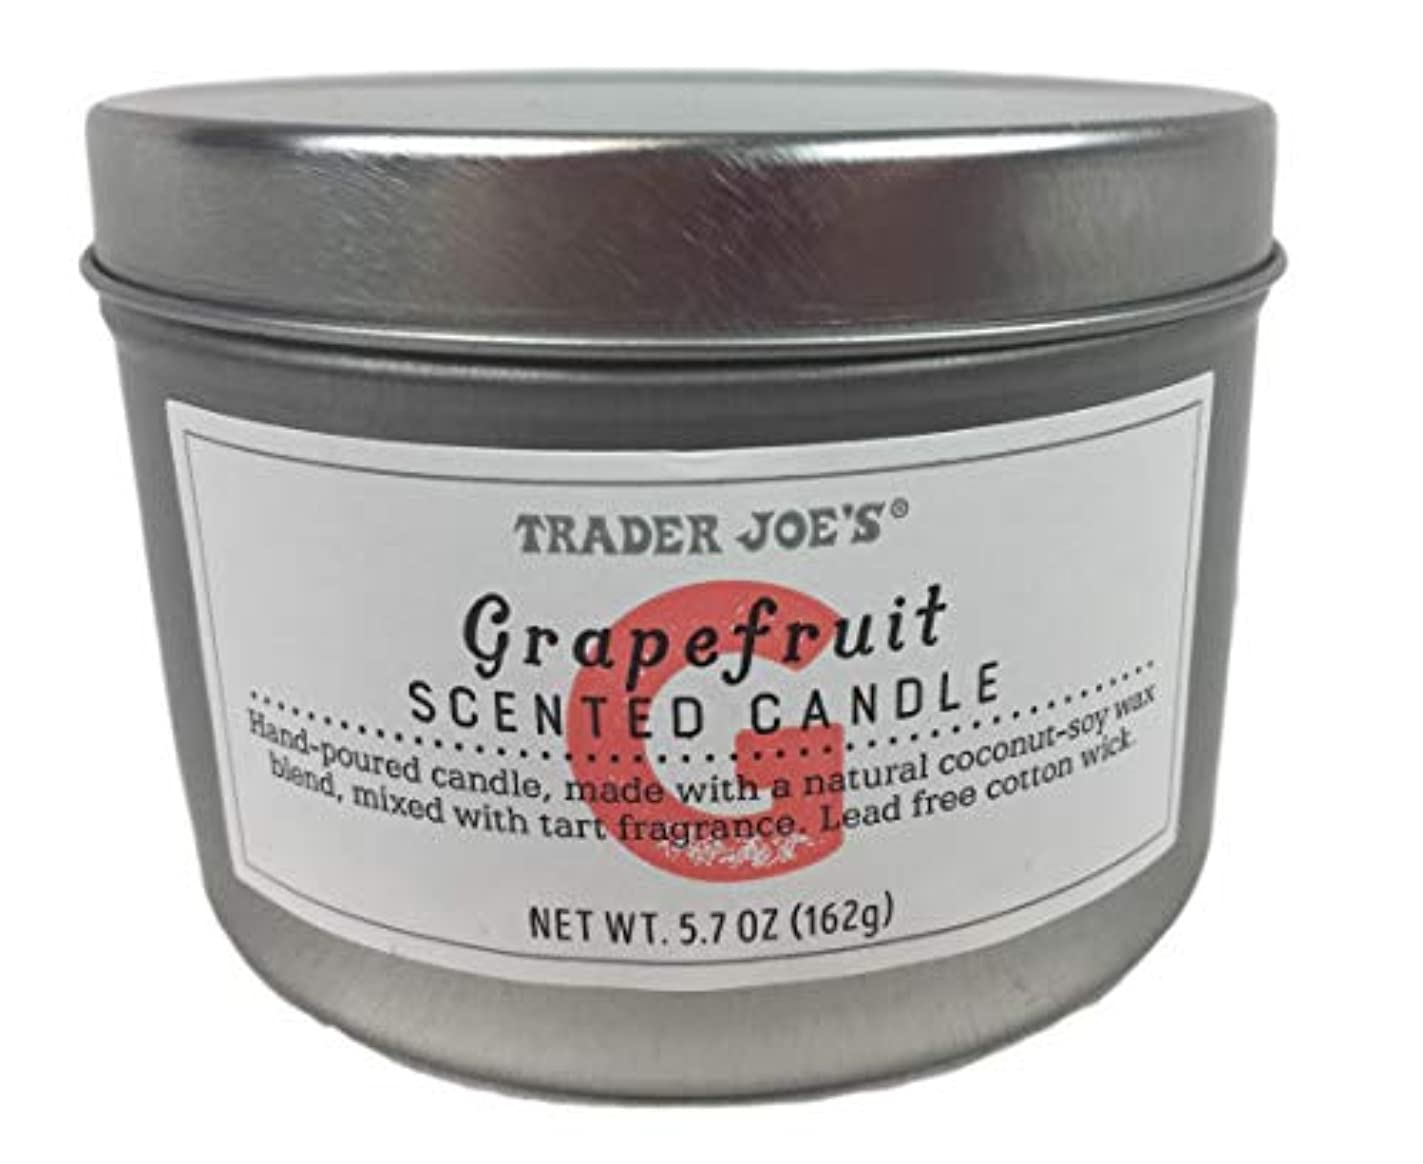 Trader Joe's Grapefruit Scented Candle NET WT 170ml (162g)